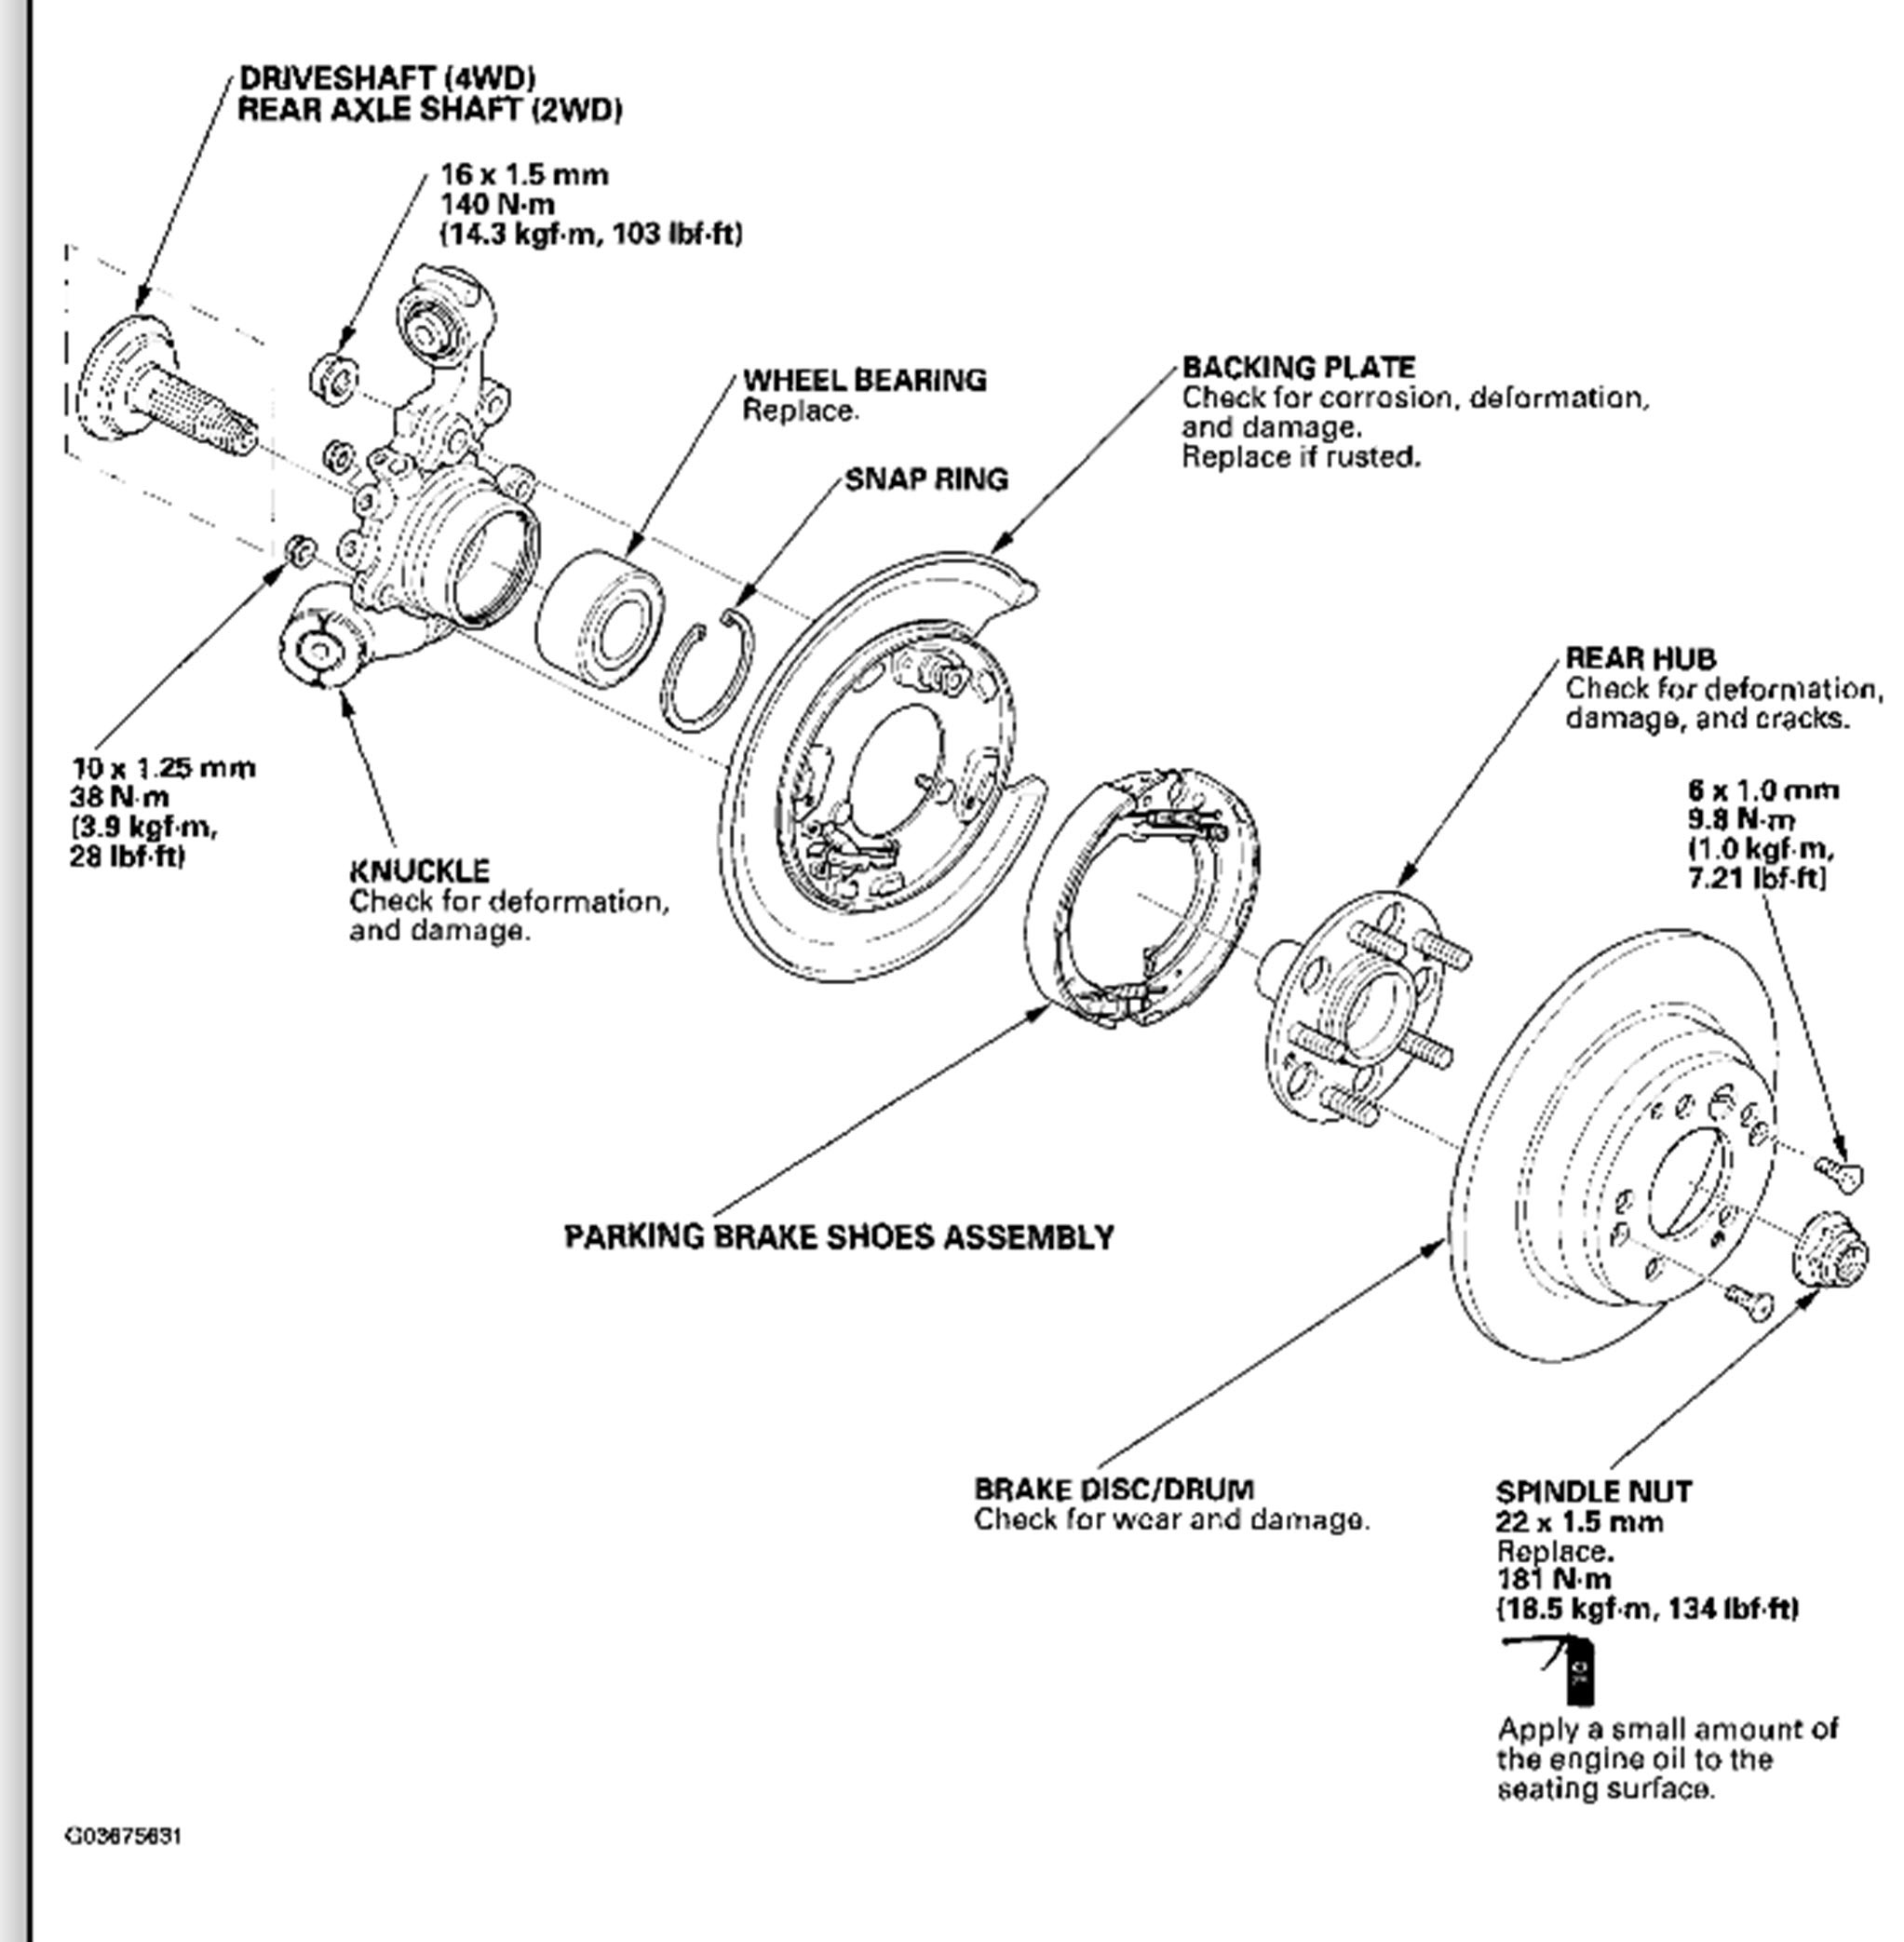 2001 honda crv parts diagram types of diagrams and charts pilot blower motor replacement imageresizertool com